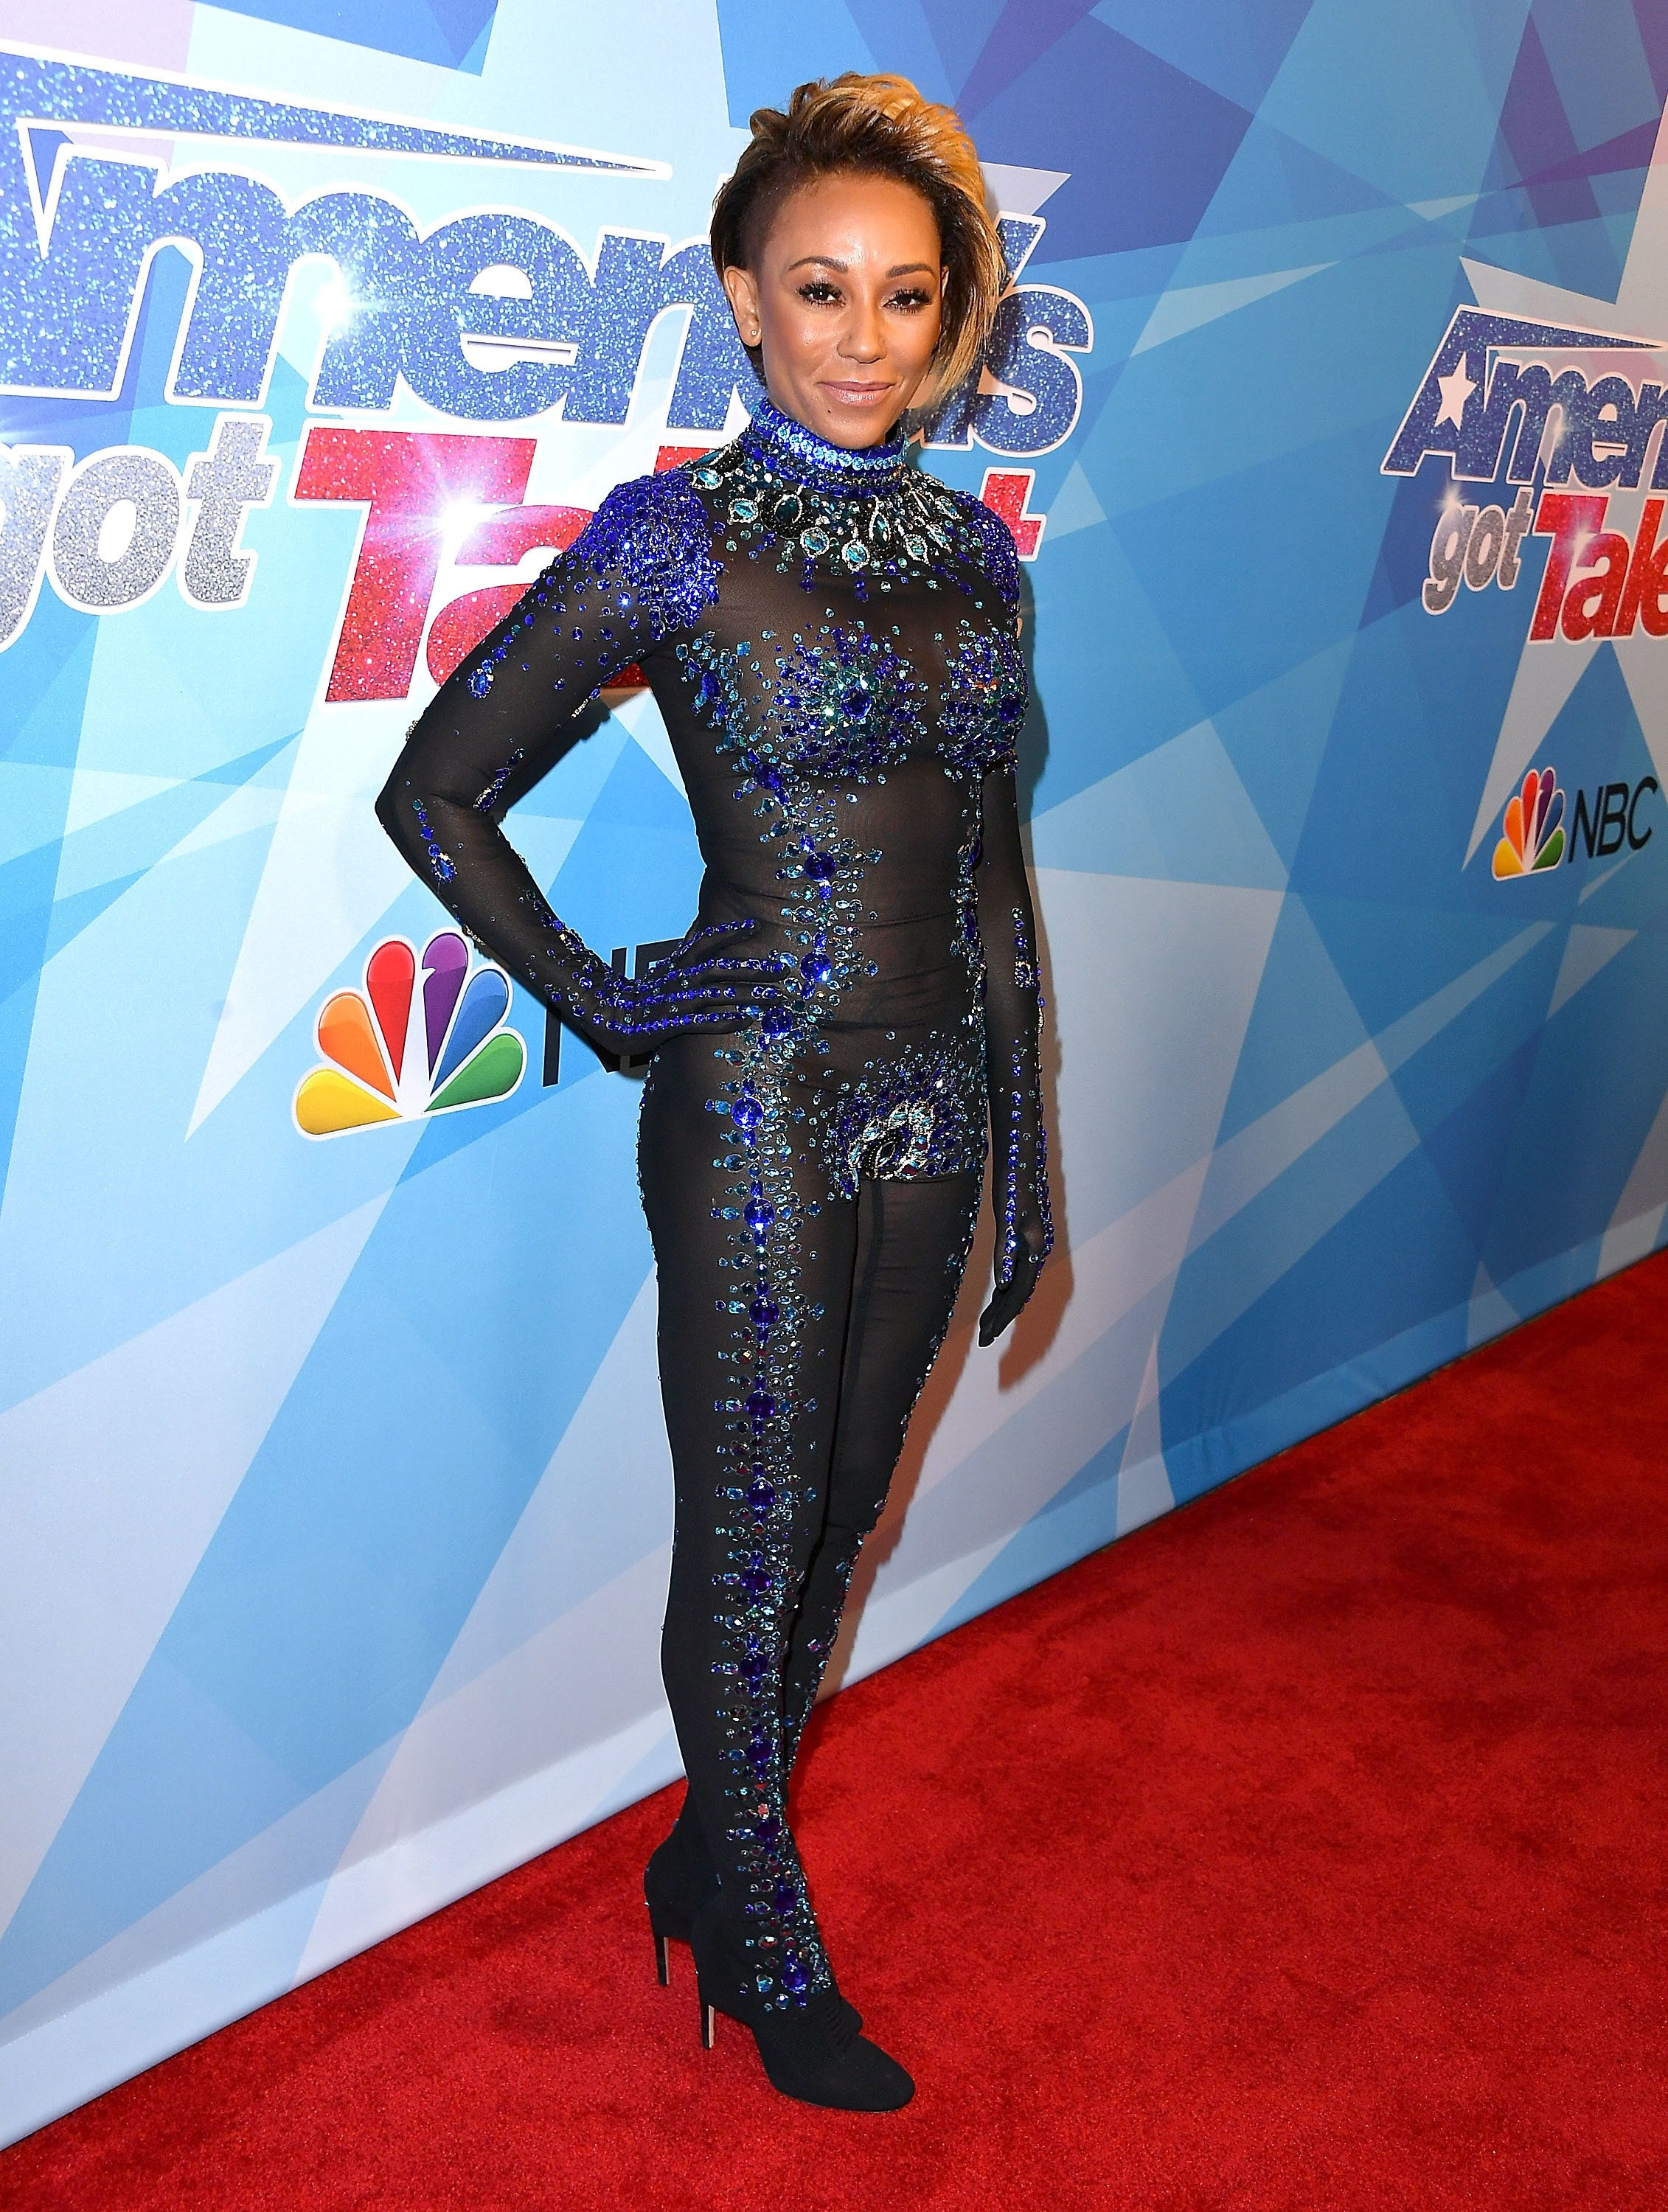 HOLLYWOOD, CA - AUGUST 15:  Mel B, Melanie Brown arrives at the Premiere Of NBC's 'America's Got Talent' Season 12 at Dolby Theatre on August 15, 2017 in Hollywood, California.  (Photo by Steve Granitz/WireImage)